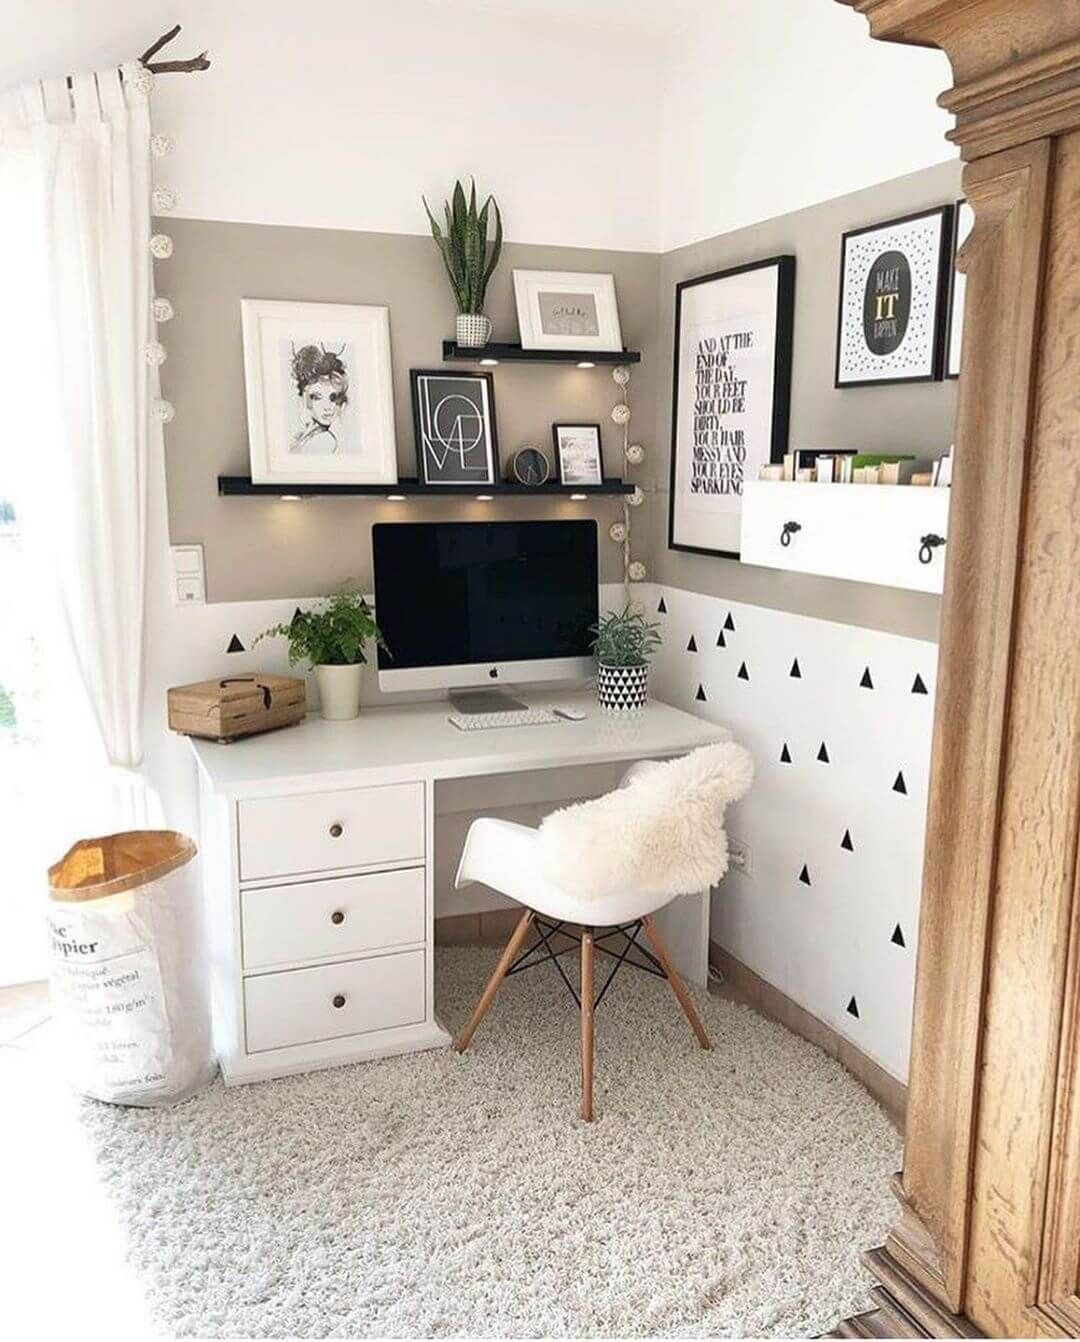 17 Amazing Corner Desk Ideas To Build For Small Office Spaces